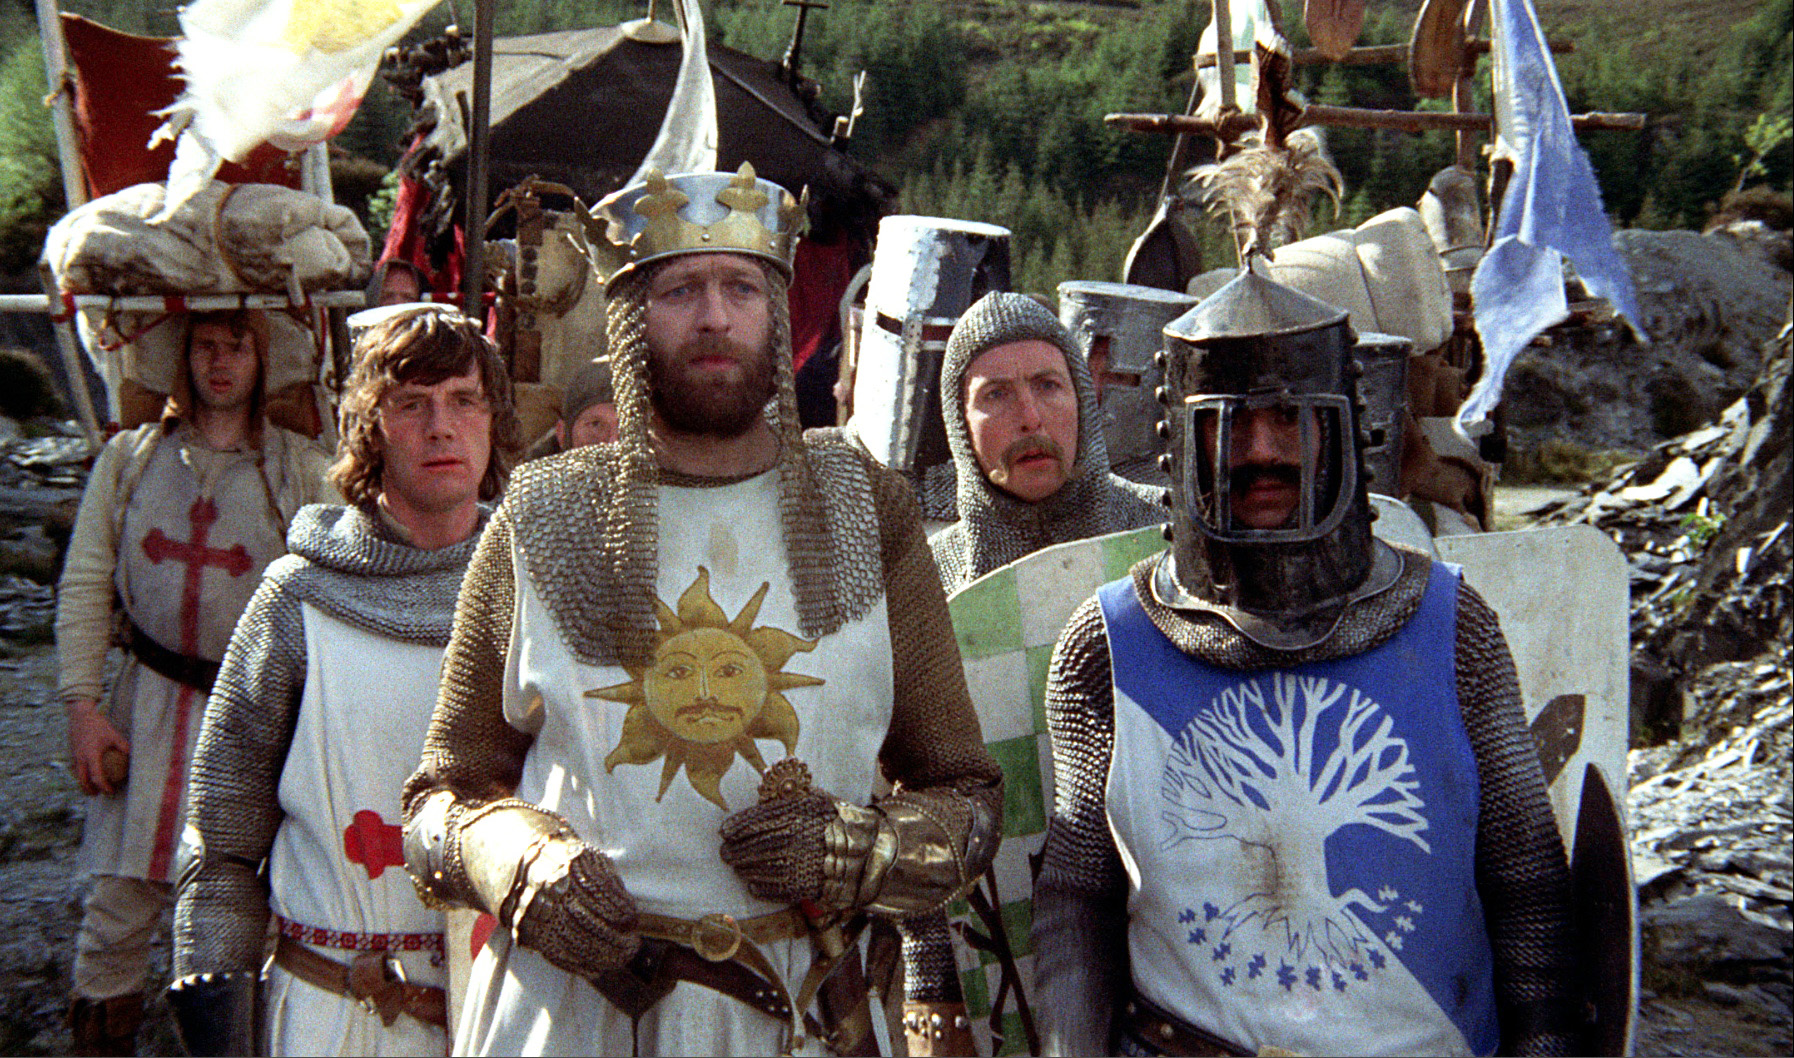 1794x1058px Monty Python And The Holy Grail 1079.04 KB